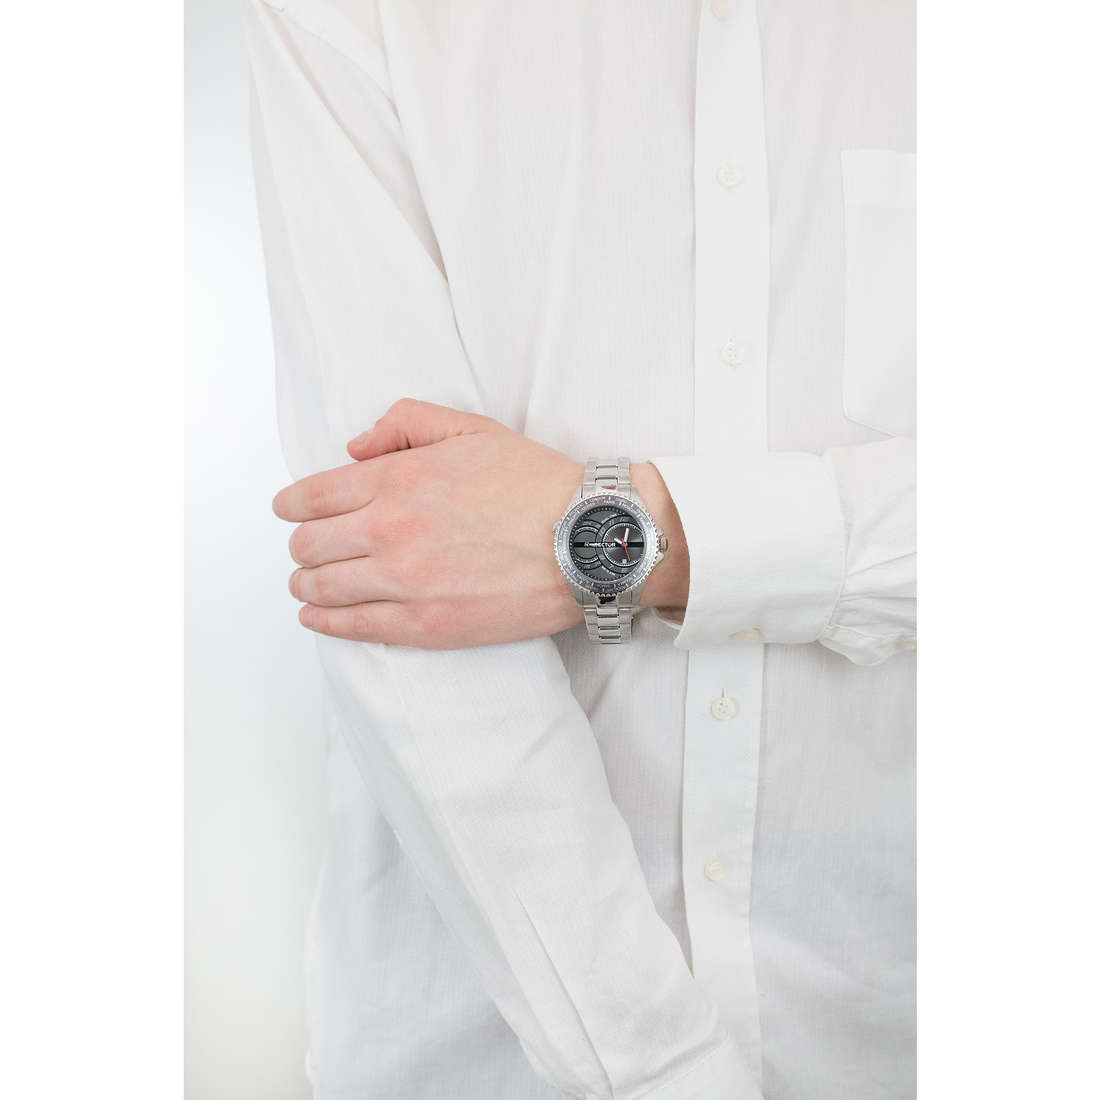 Sector dual time 235 homme R3253161004 photo wearing